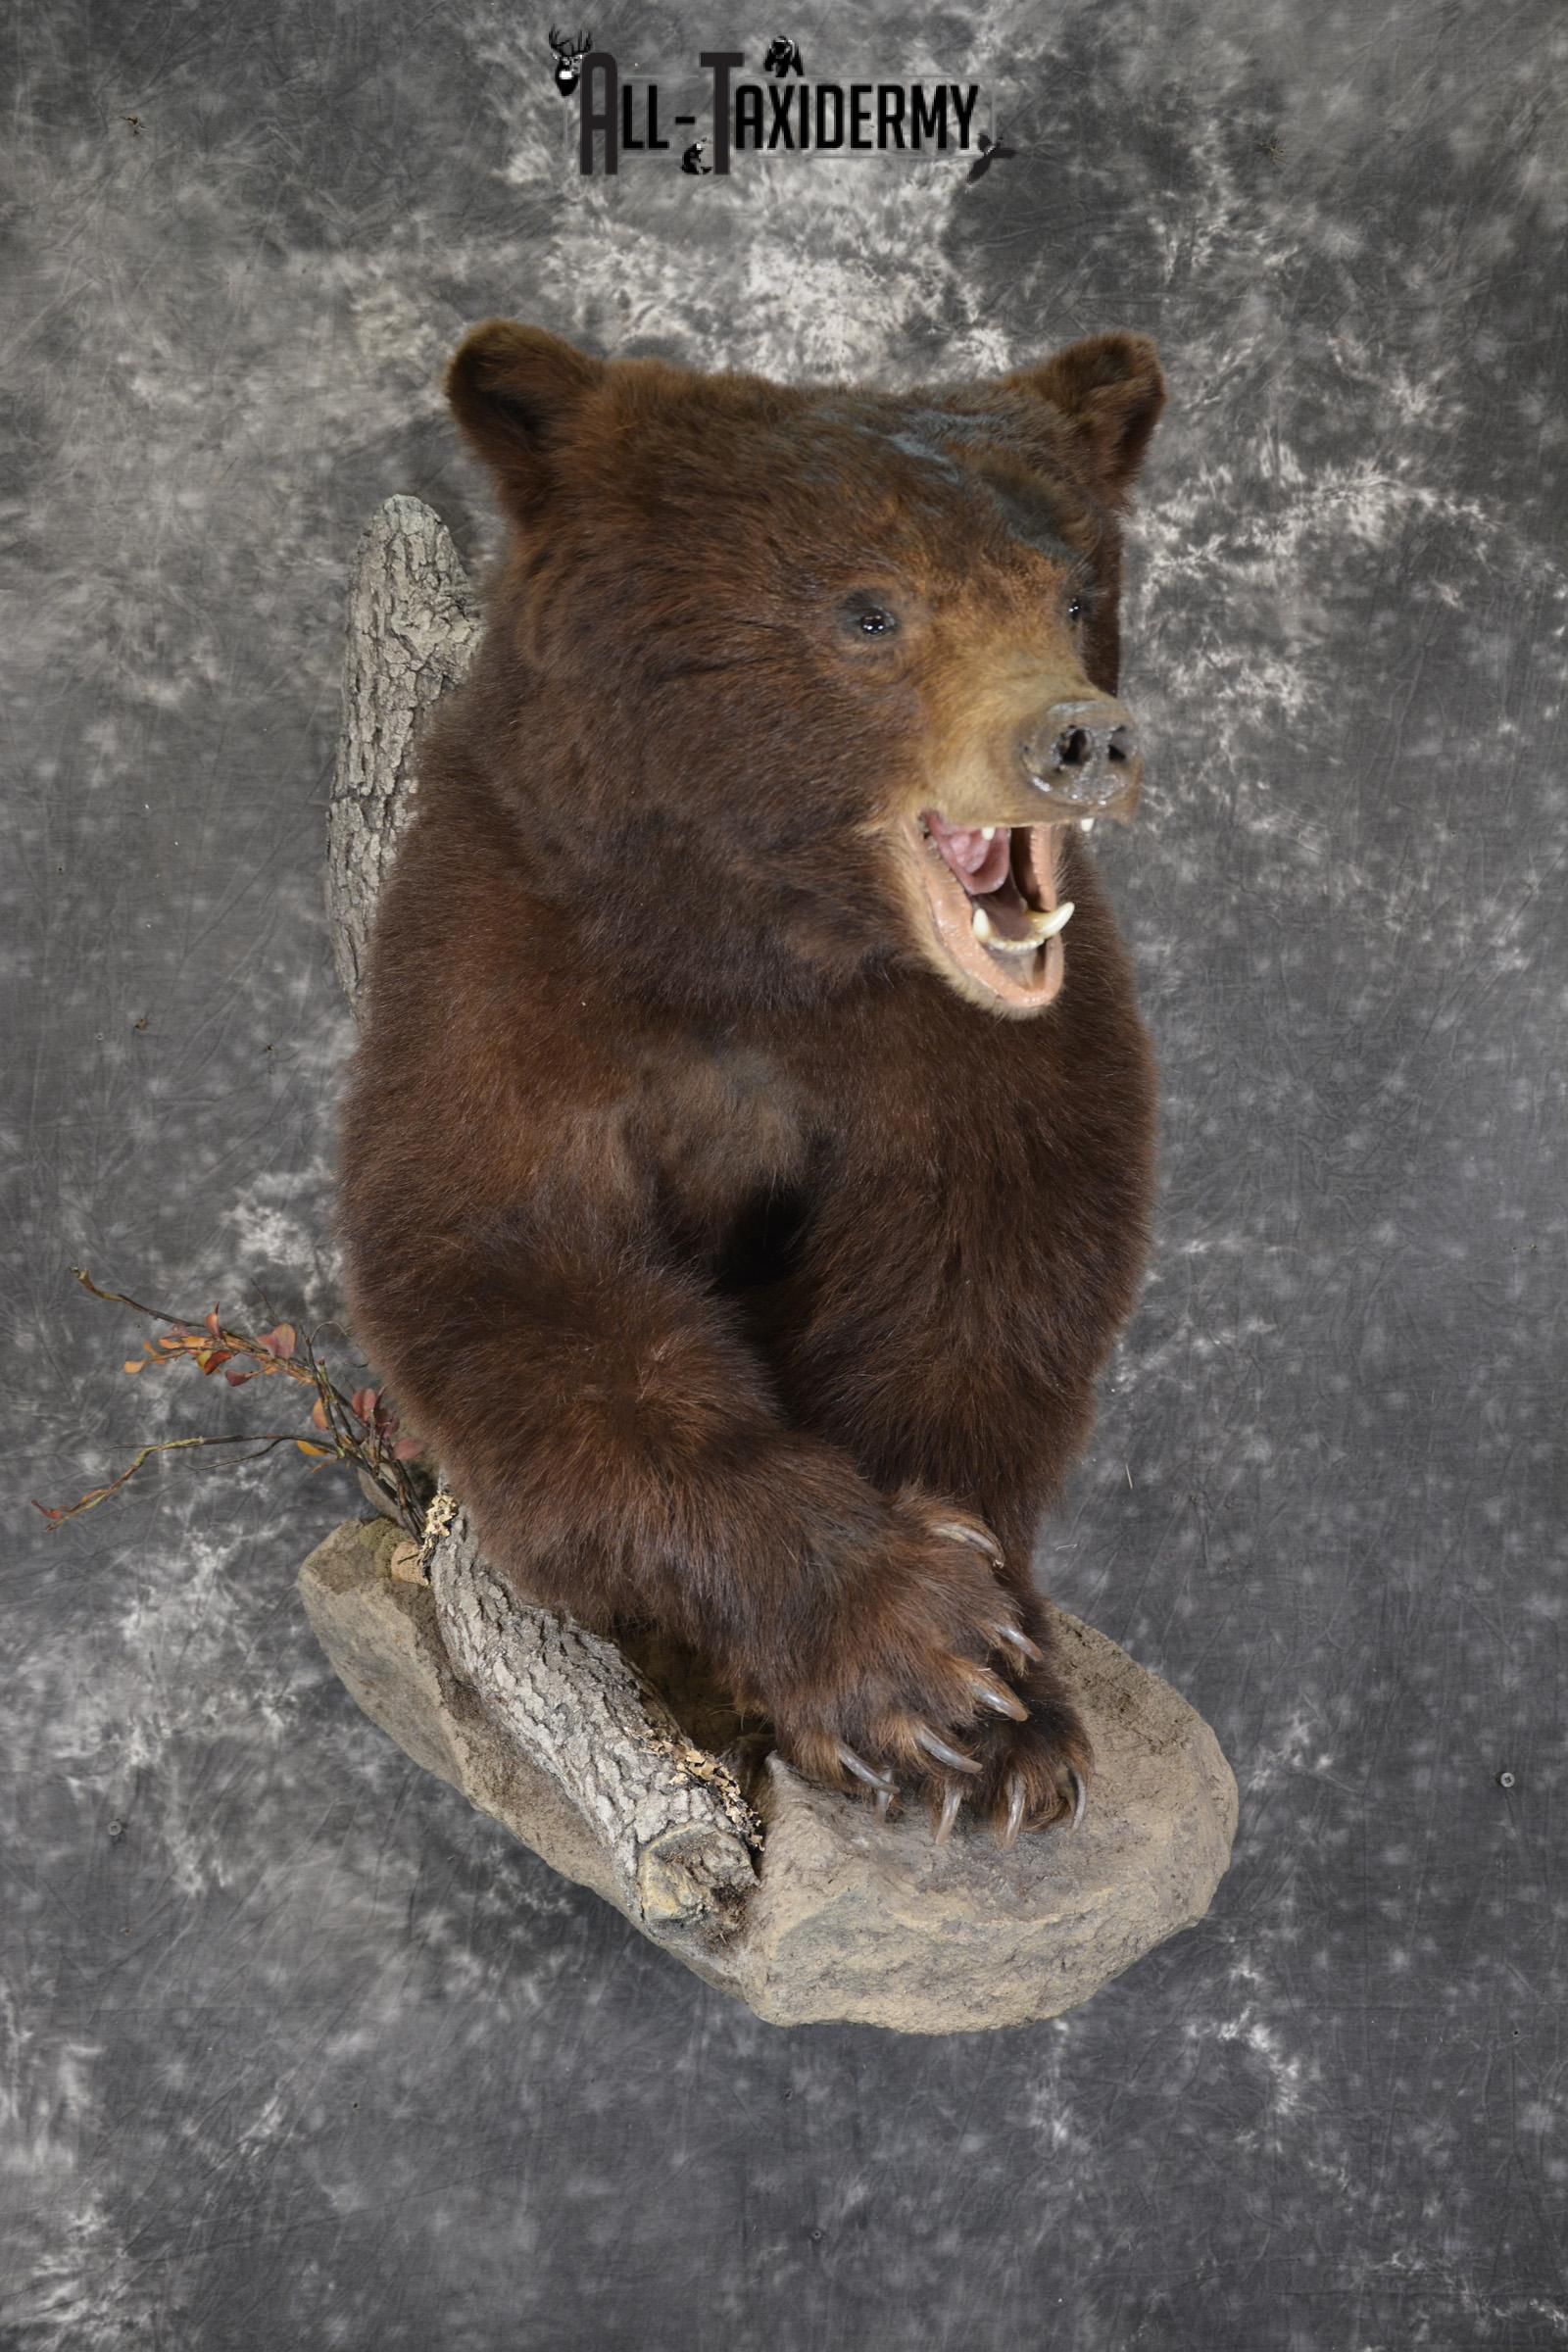 Brown Phase Black Bear 1/2 body taxidermy mount for sale SKU 1897